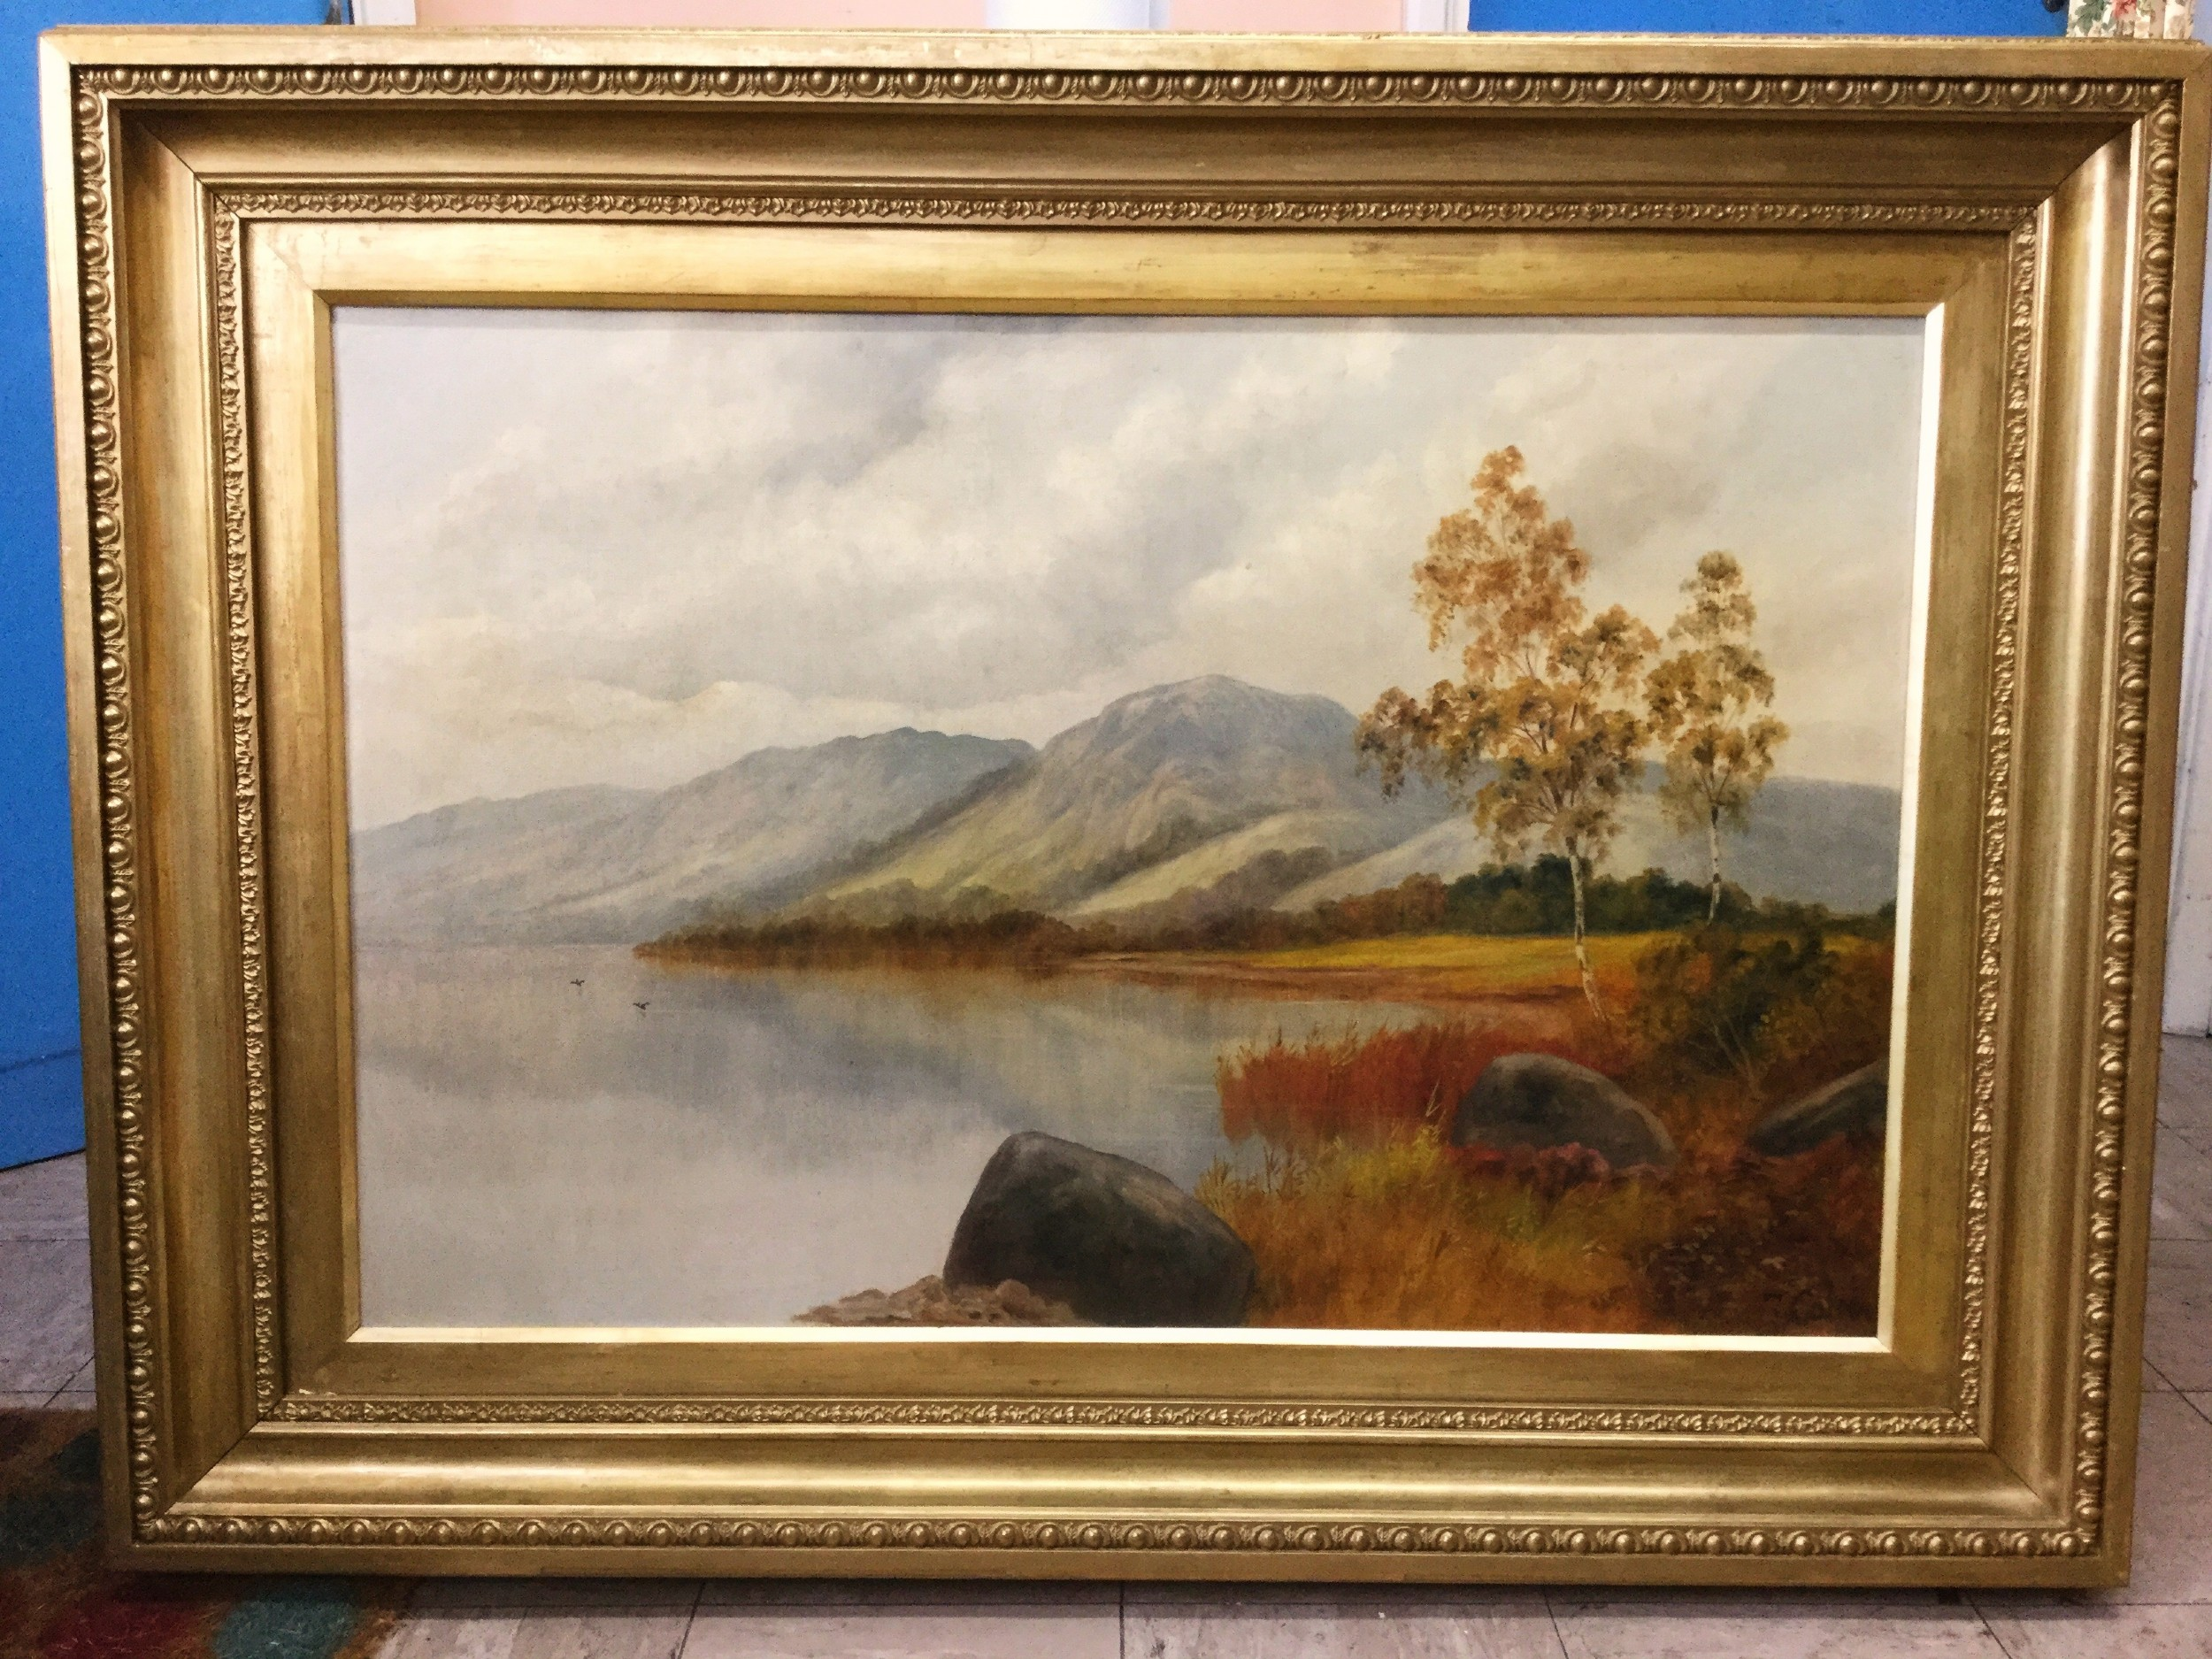 19thclandscape oil painting scottish loch manner of fejamieson 35 x 47 inches